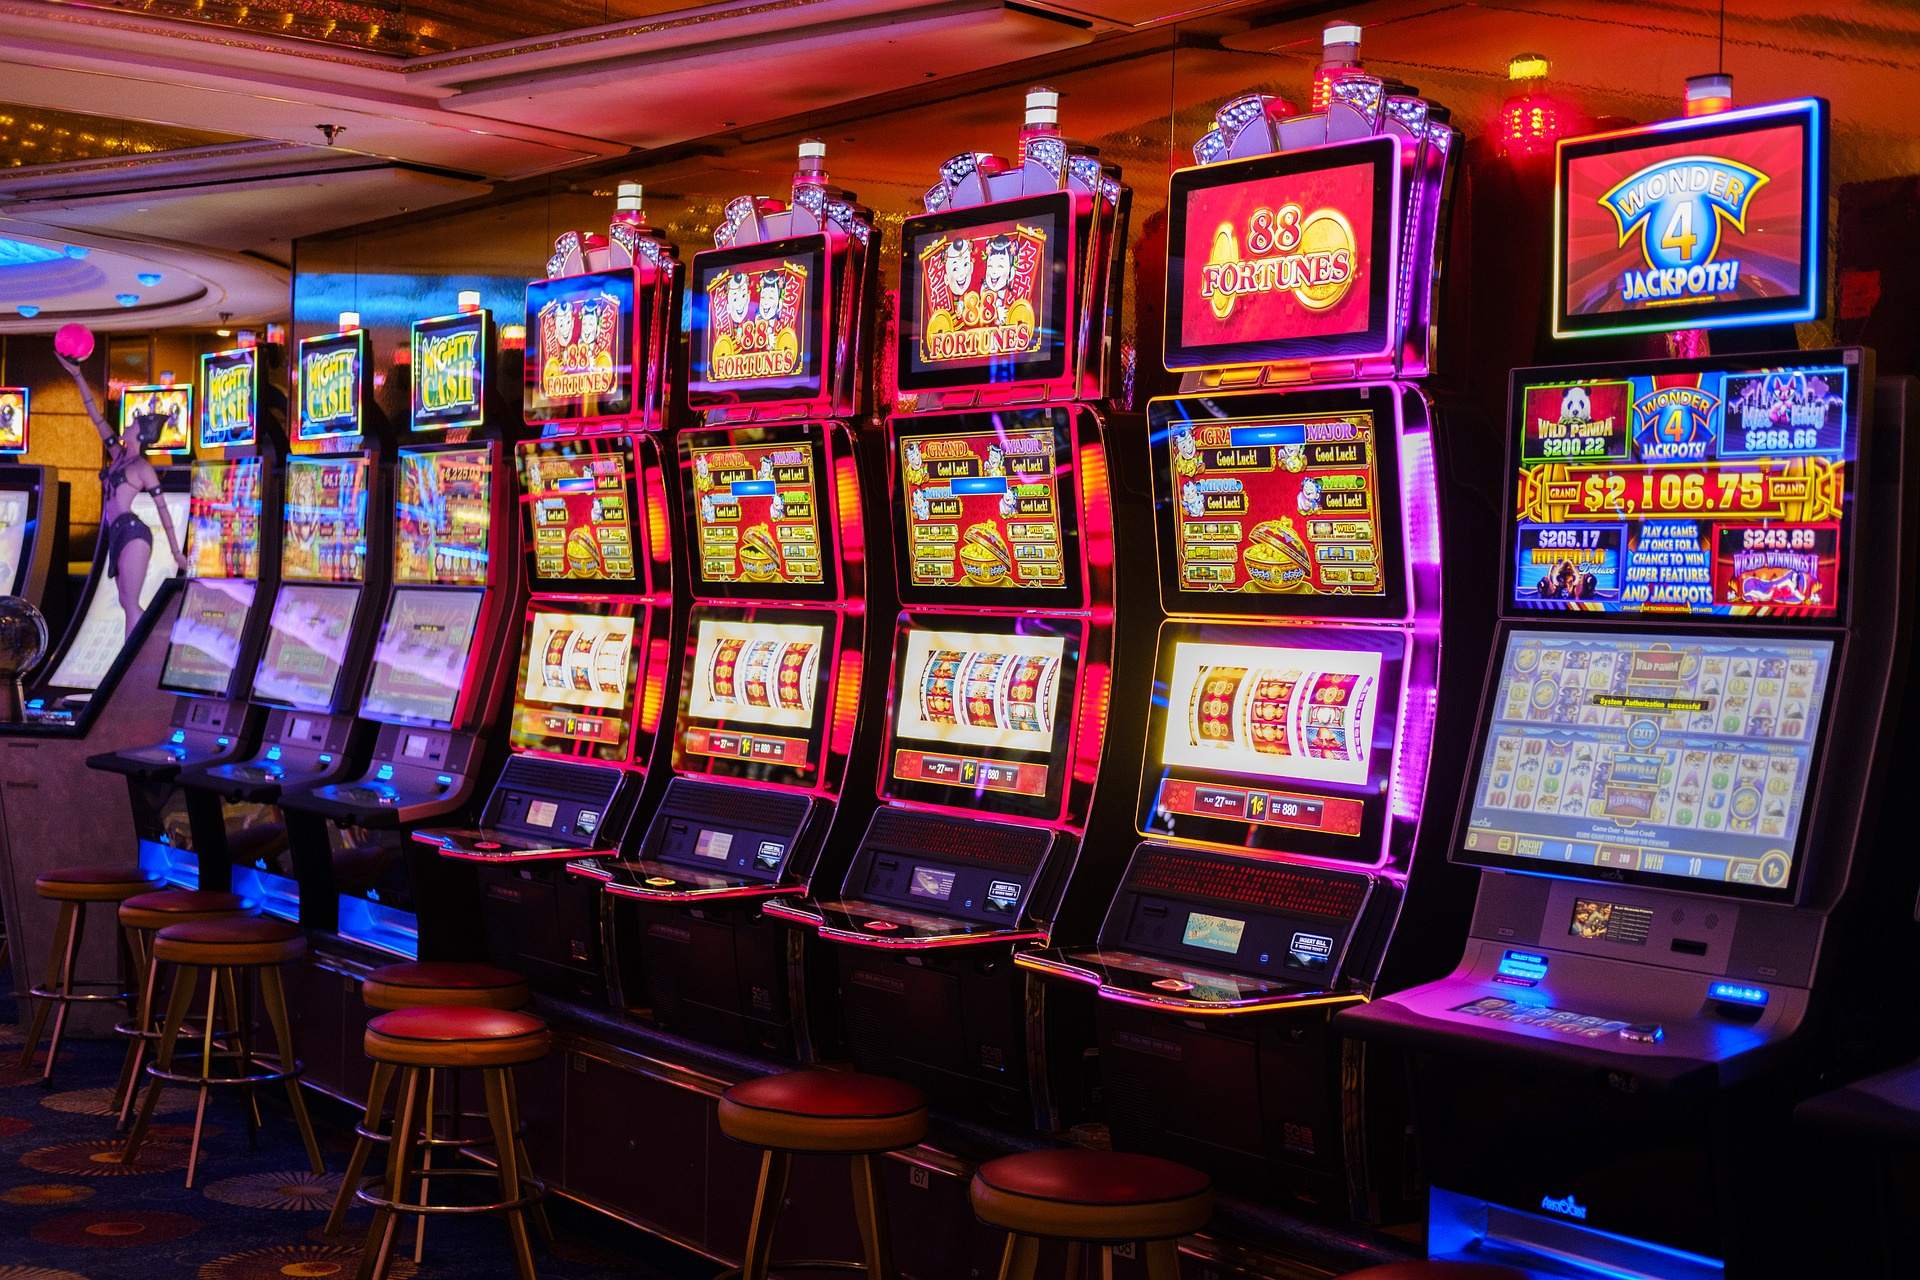 A detailed discussion about mobile slot game